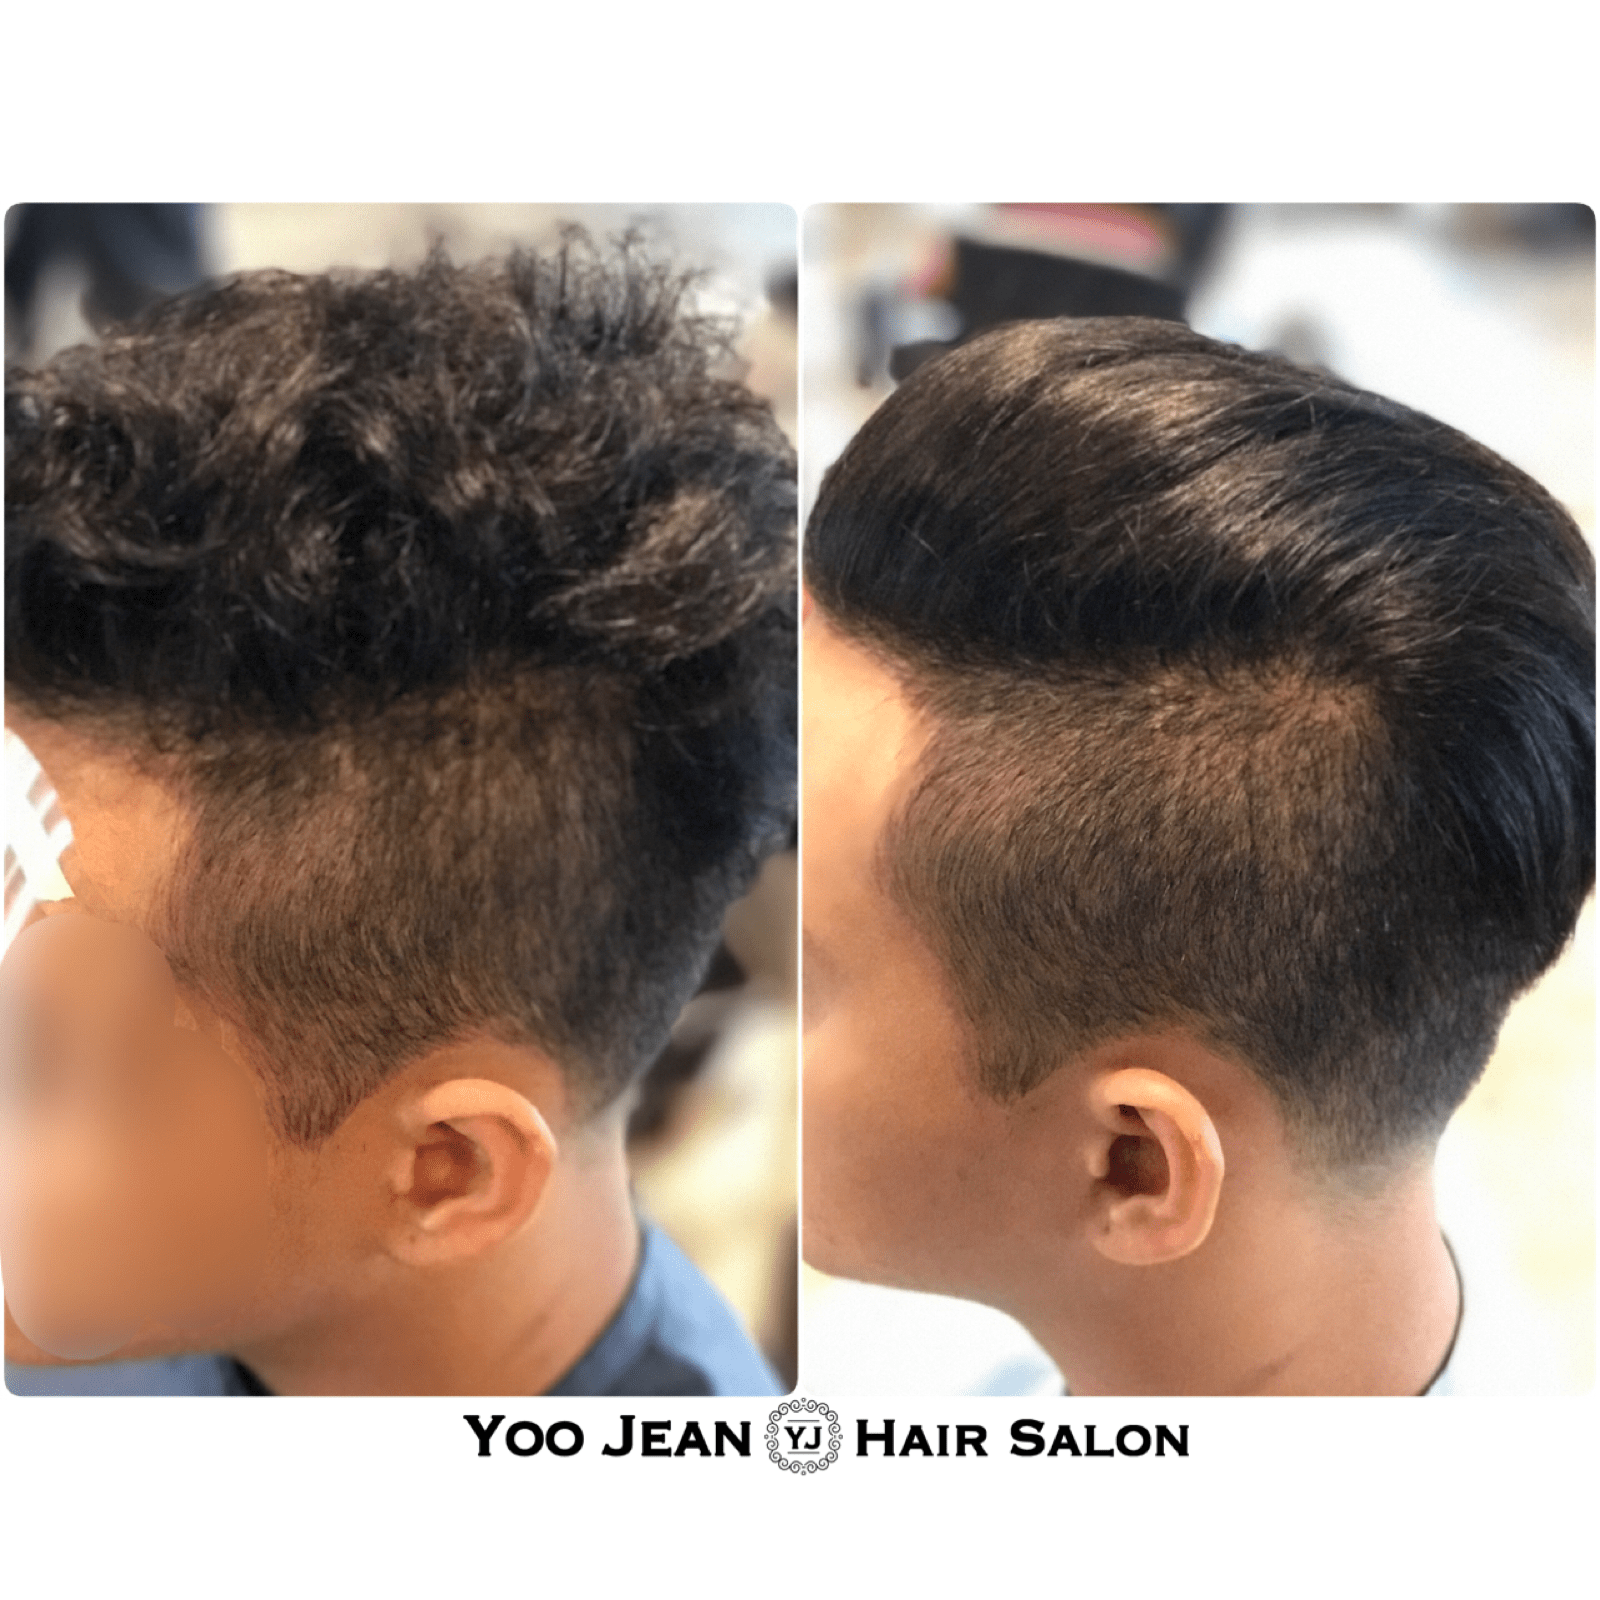 Hair Salon 1 Volume Rebonding For Man Yoo Jean 39s Hair Salon Korean